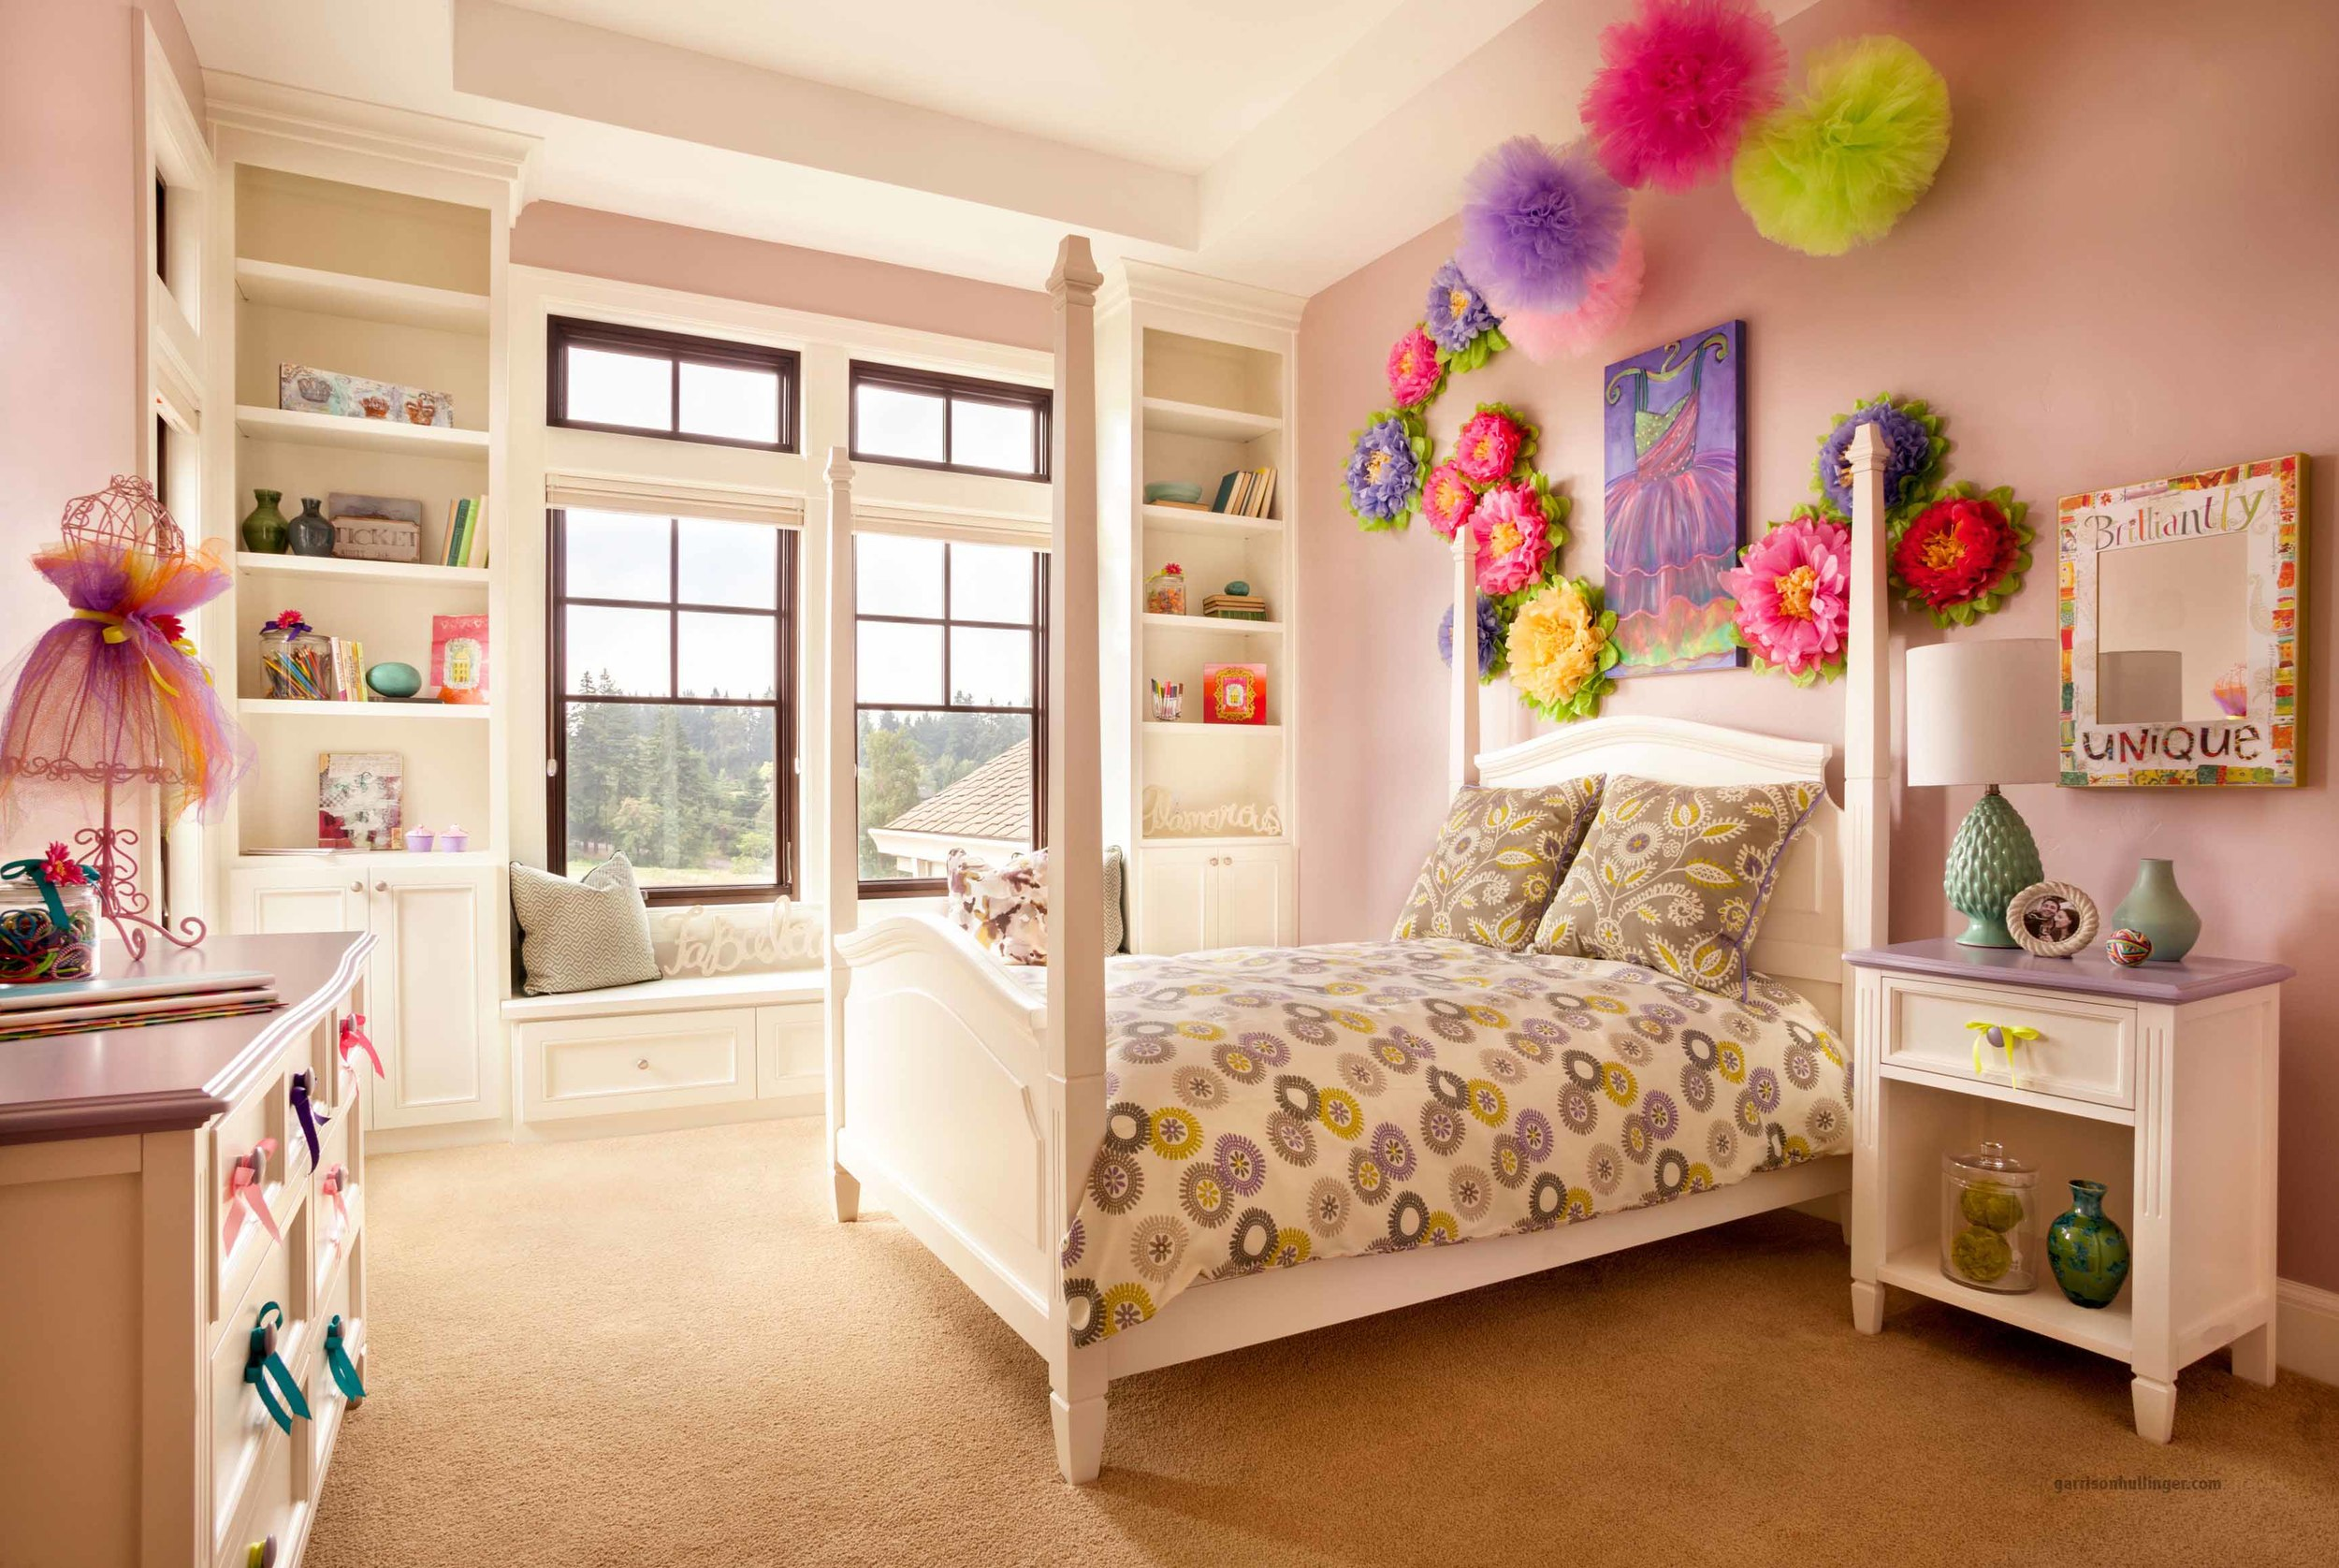 girls bedroom ideas, kids bedrooms, inspiration for children's bedrooms